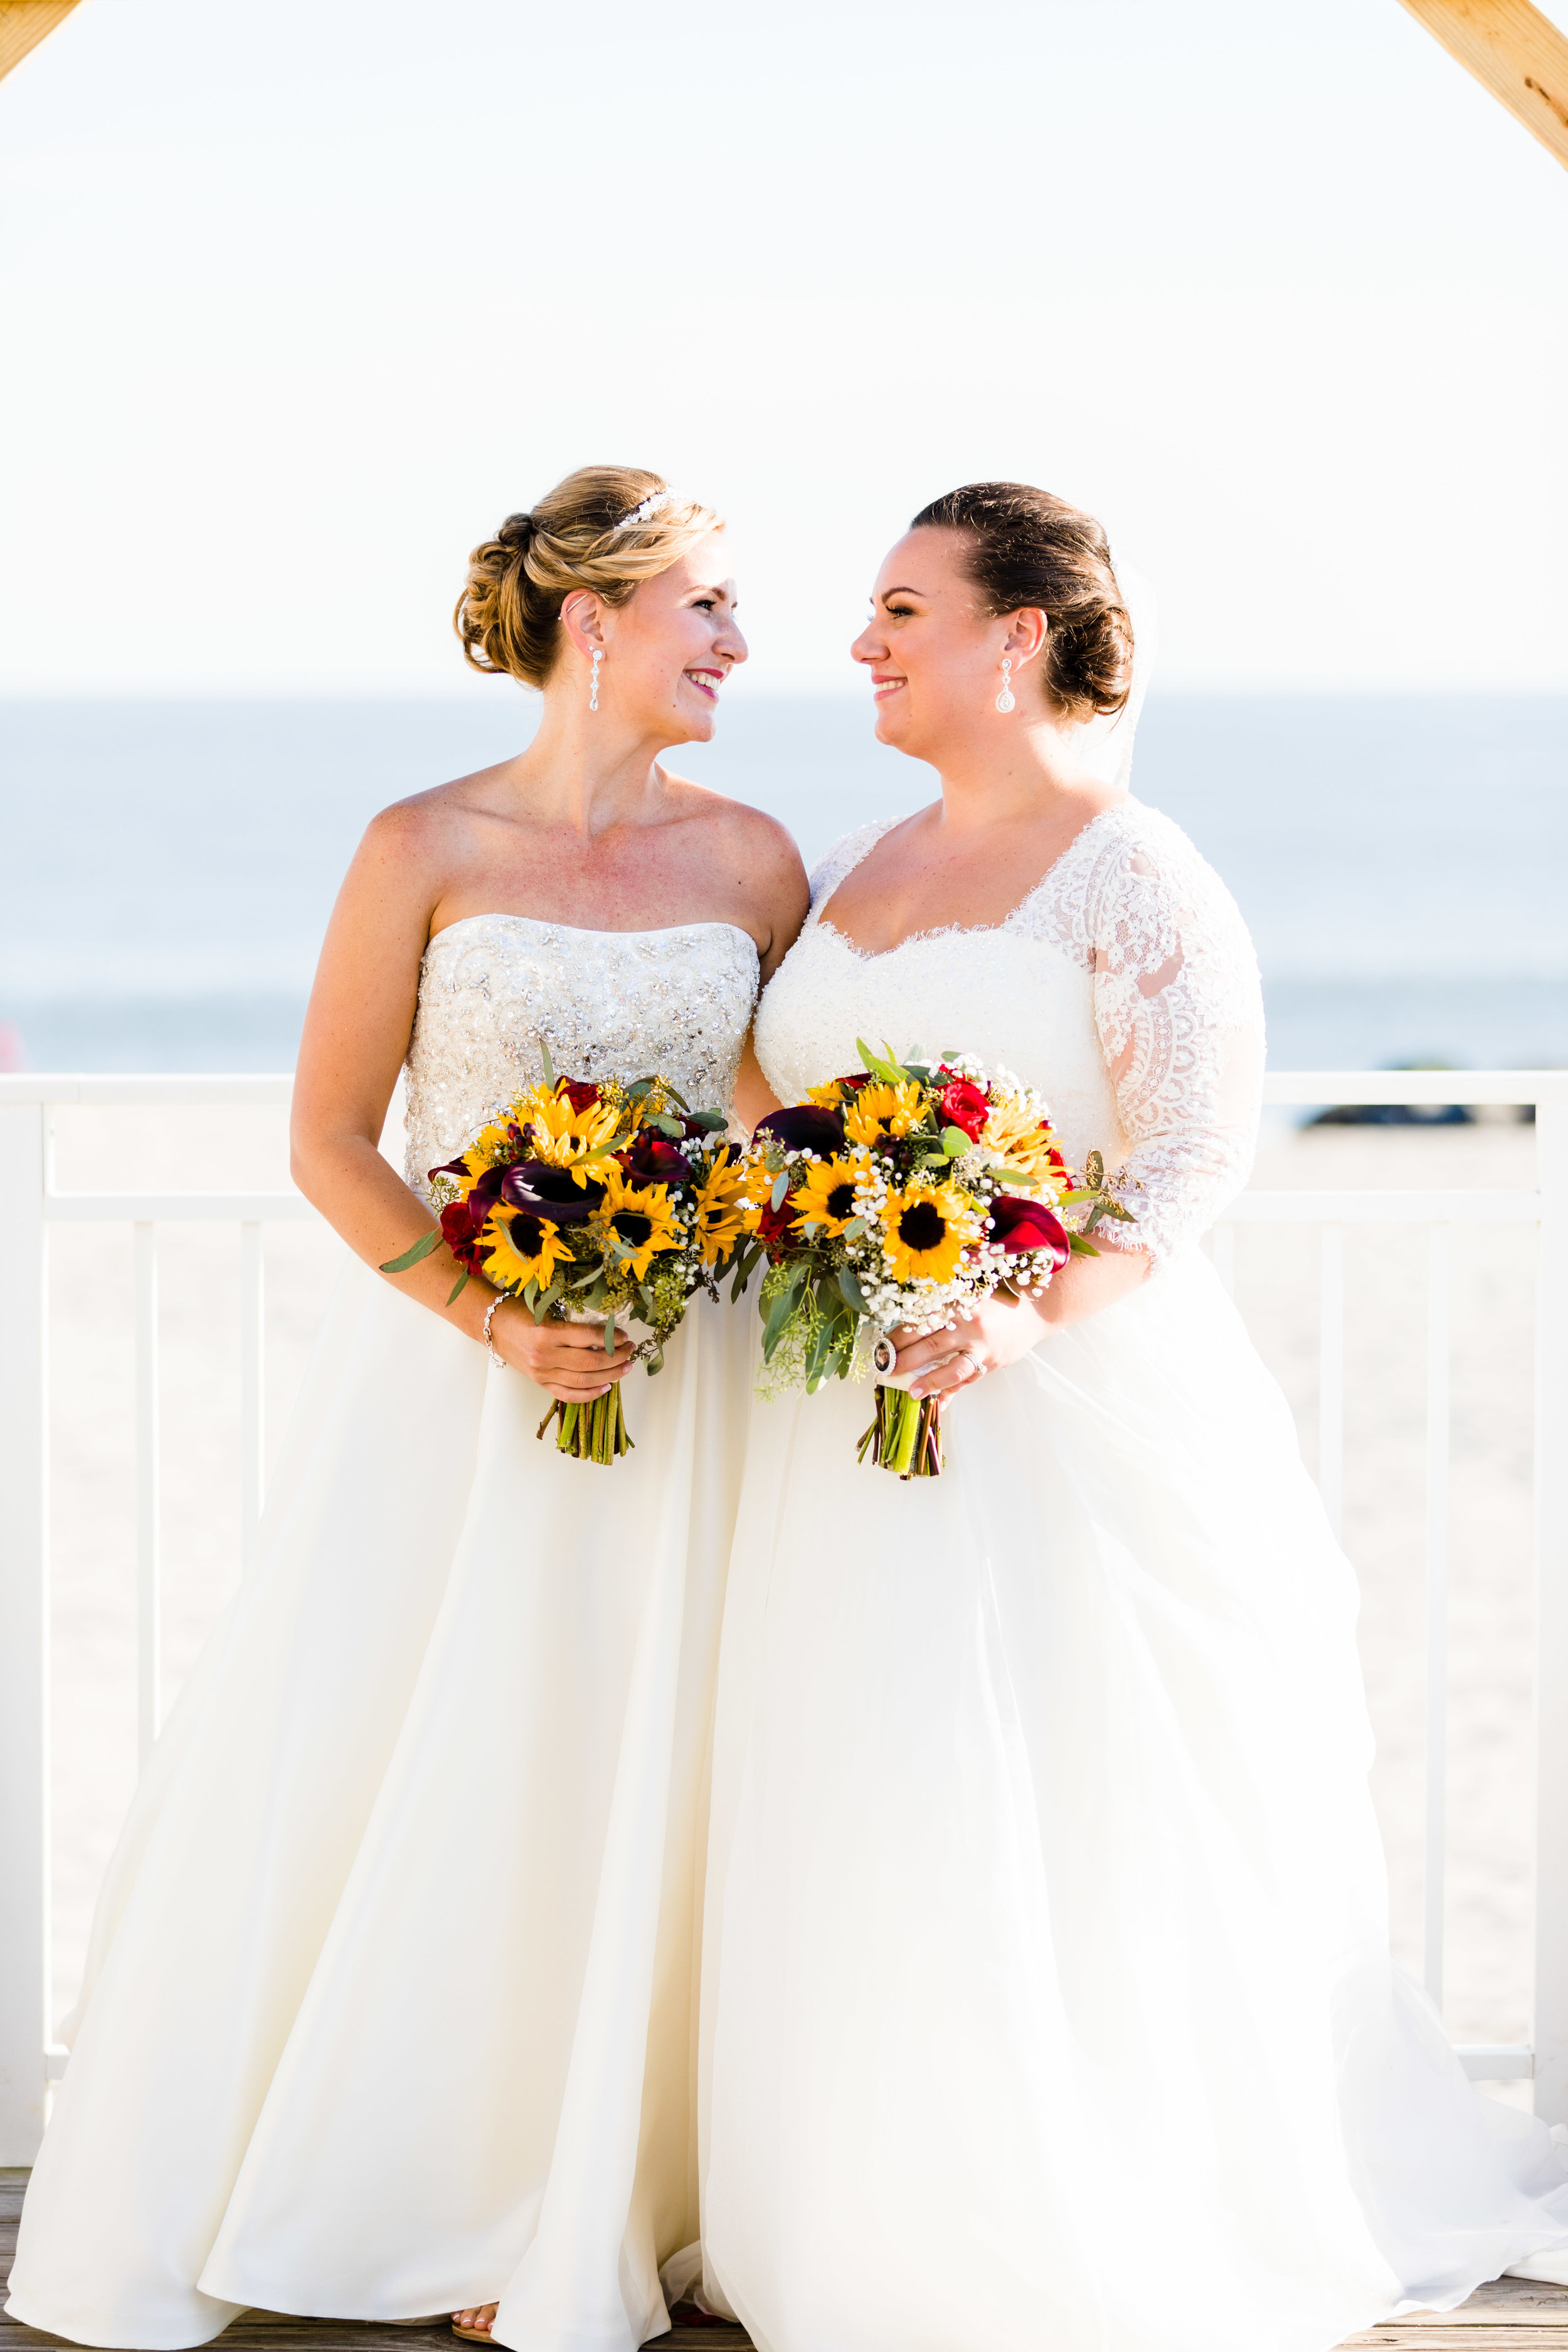 Kim and Dominique  - Cape May Convention Hall Wedding - 122.jpg